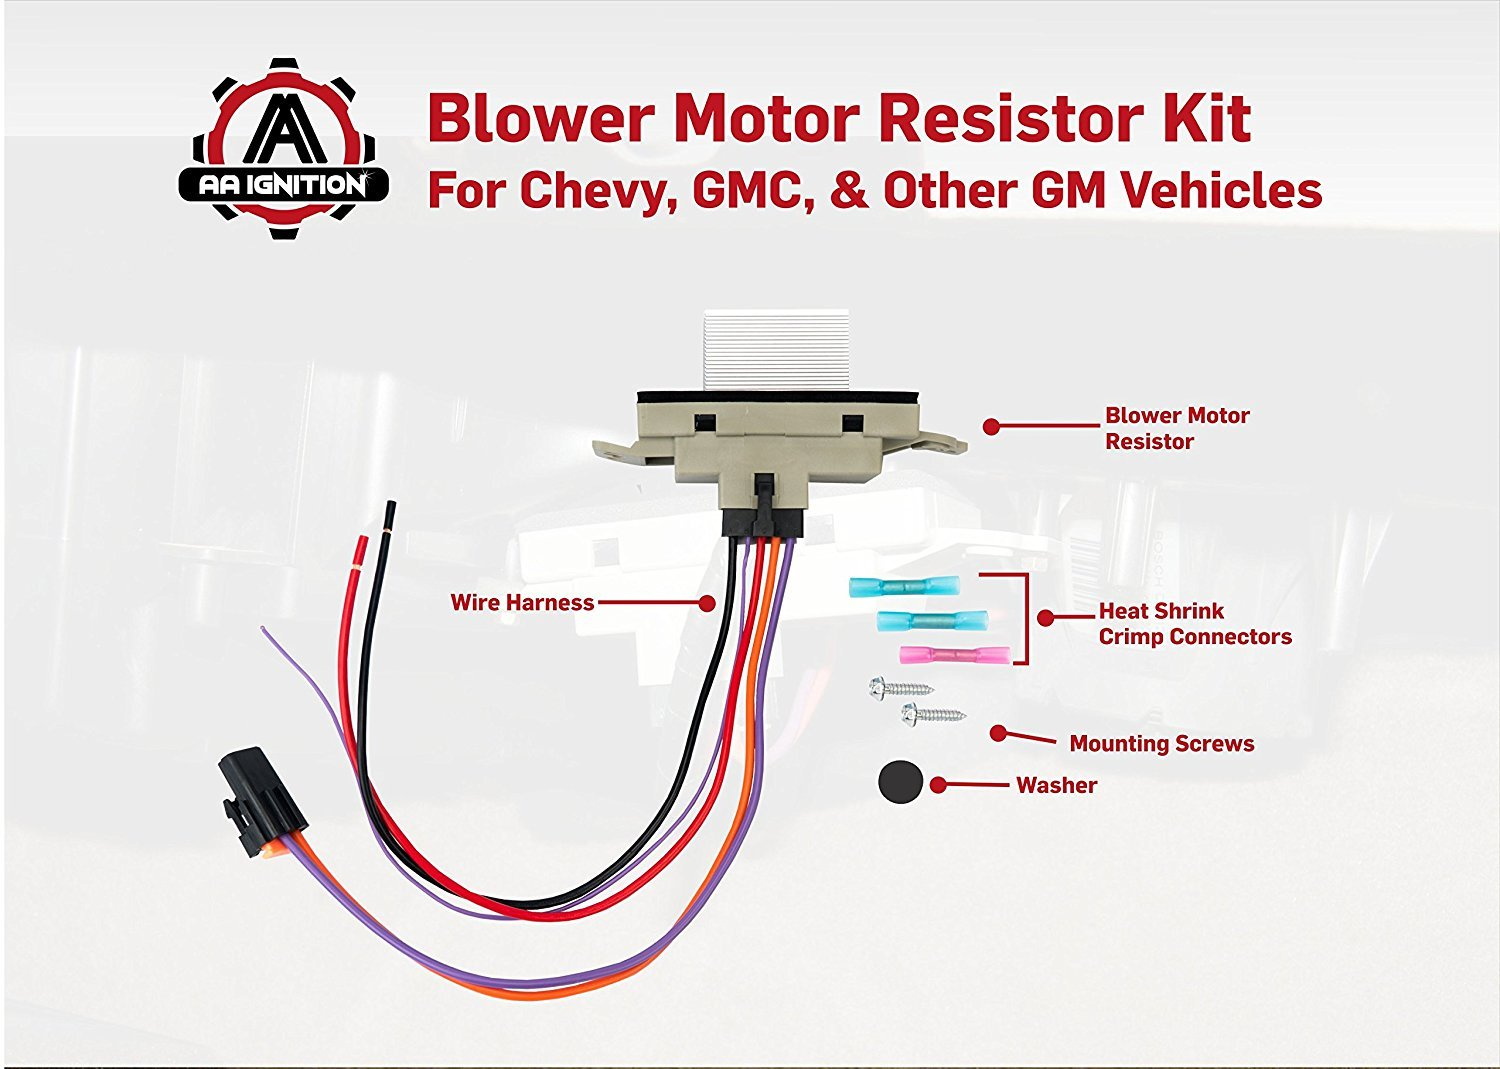 Blower Motor Resistor Complete Kit With Harness 1989 Saab Wiring Replaces 15 81773 89018778 89019351 1581773 Fits Chevy Silverado Tahoe